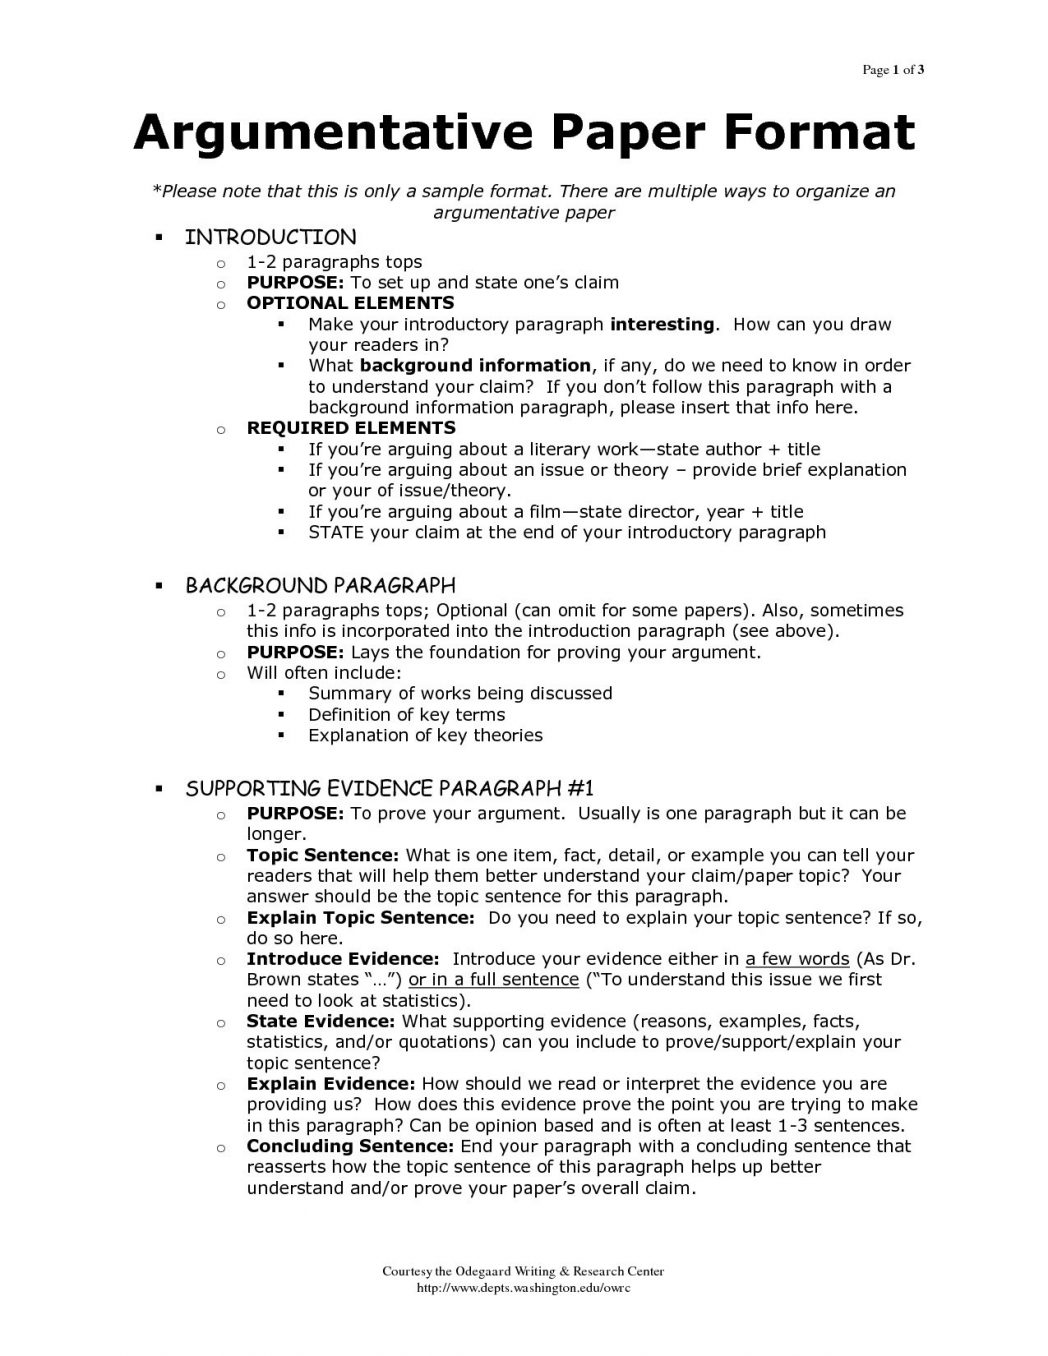 003 Essay Example Argumentative Conclusion Outline Writings And Essays Argument Layout Debate Proposal Examples Pertainin Samples How To Write An Stunning Template Uk Structure For University Full